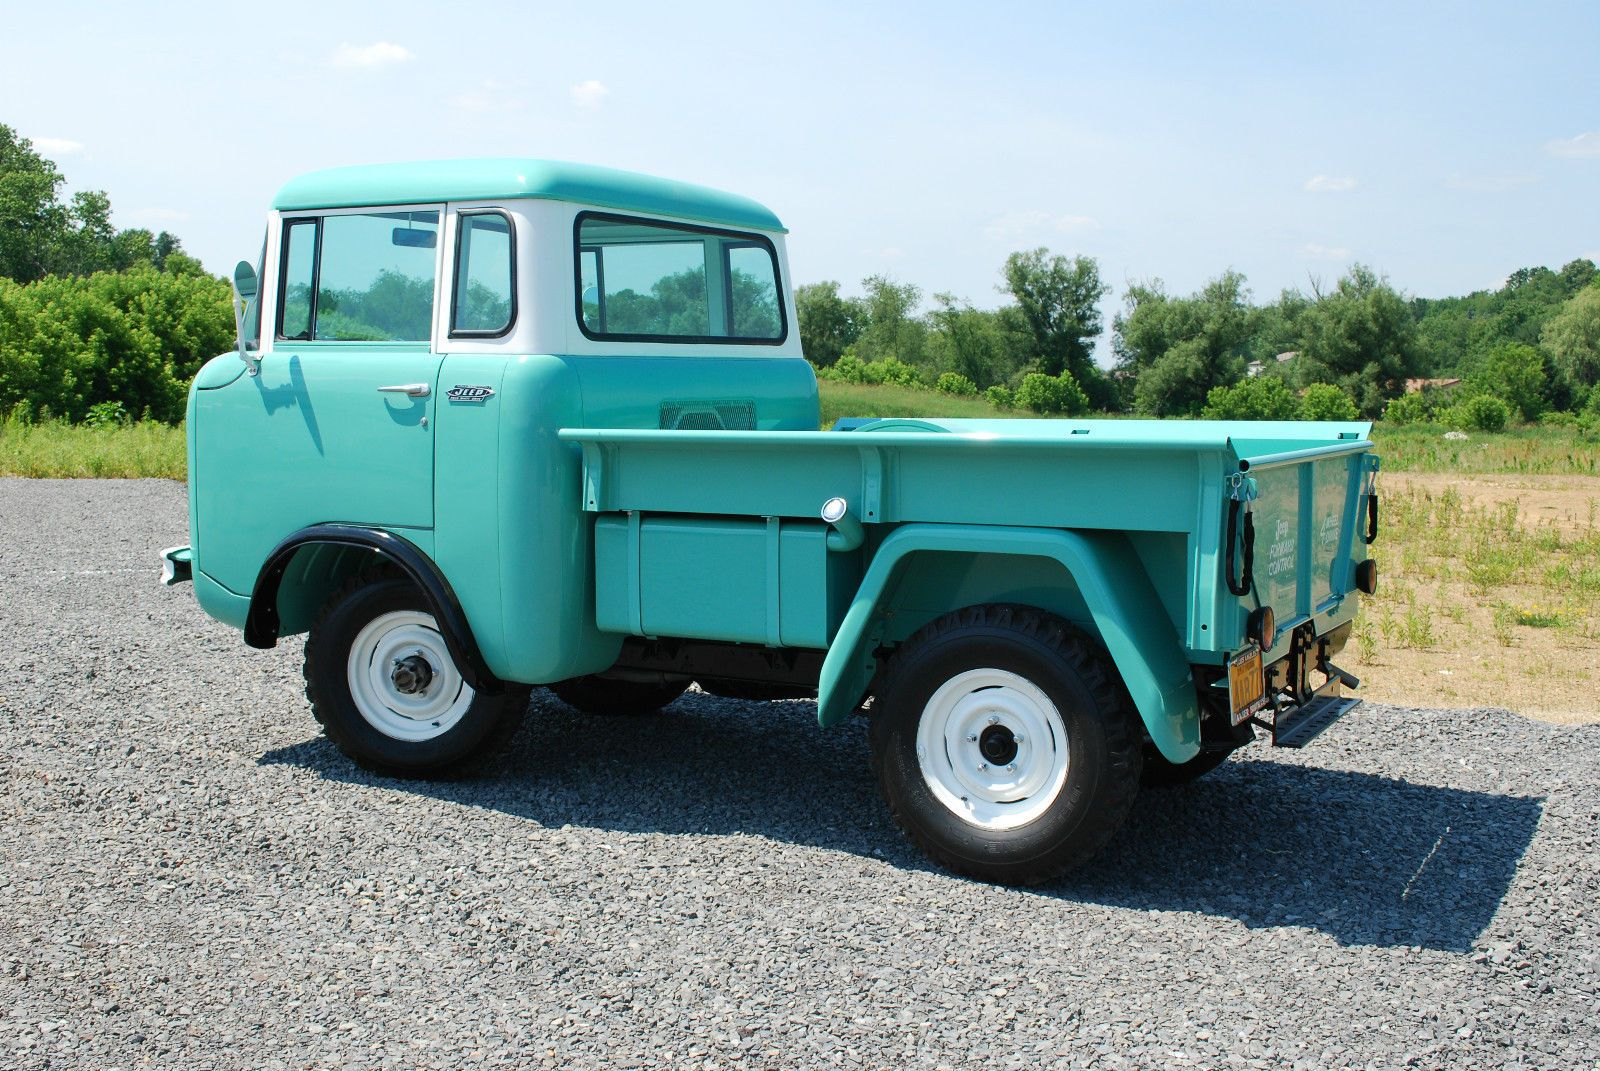 1951 willys jeep truck completely restored complete restoration performed restoration includes original rebuilt original motor rebuilt original